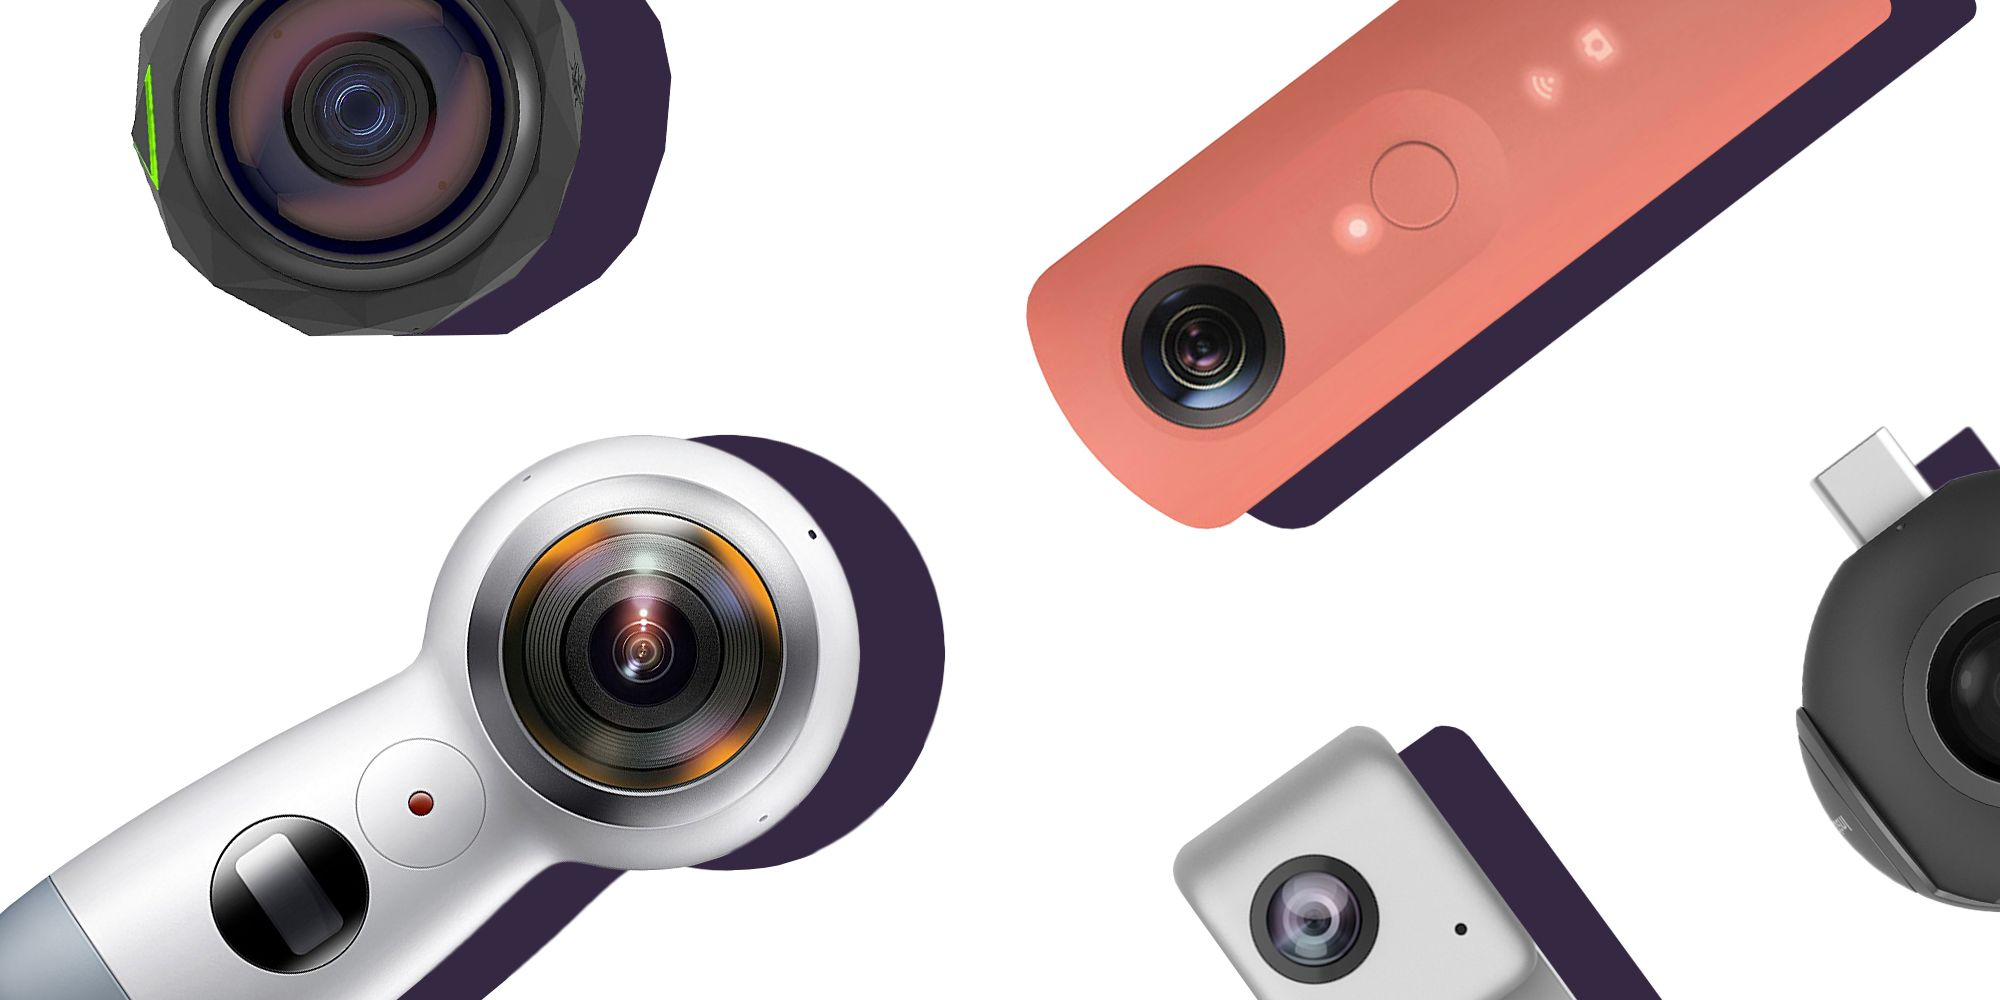 The 9 Best 360 Degree Cameras for Capturing Everything - 360 Camera Reviews 2018